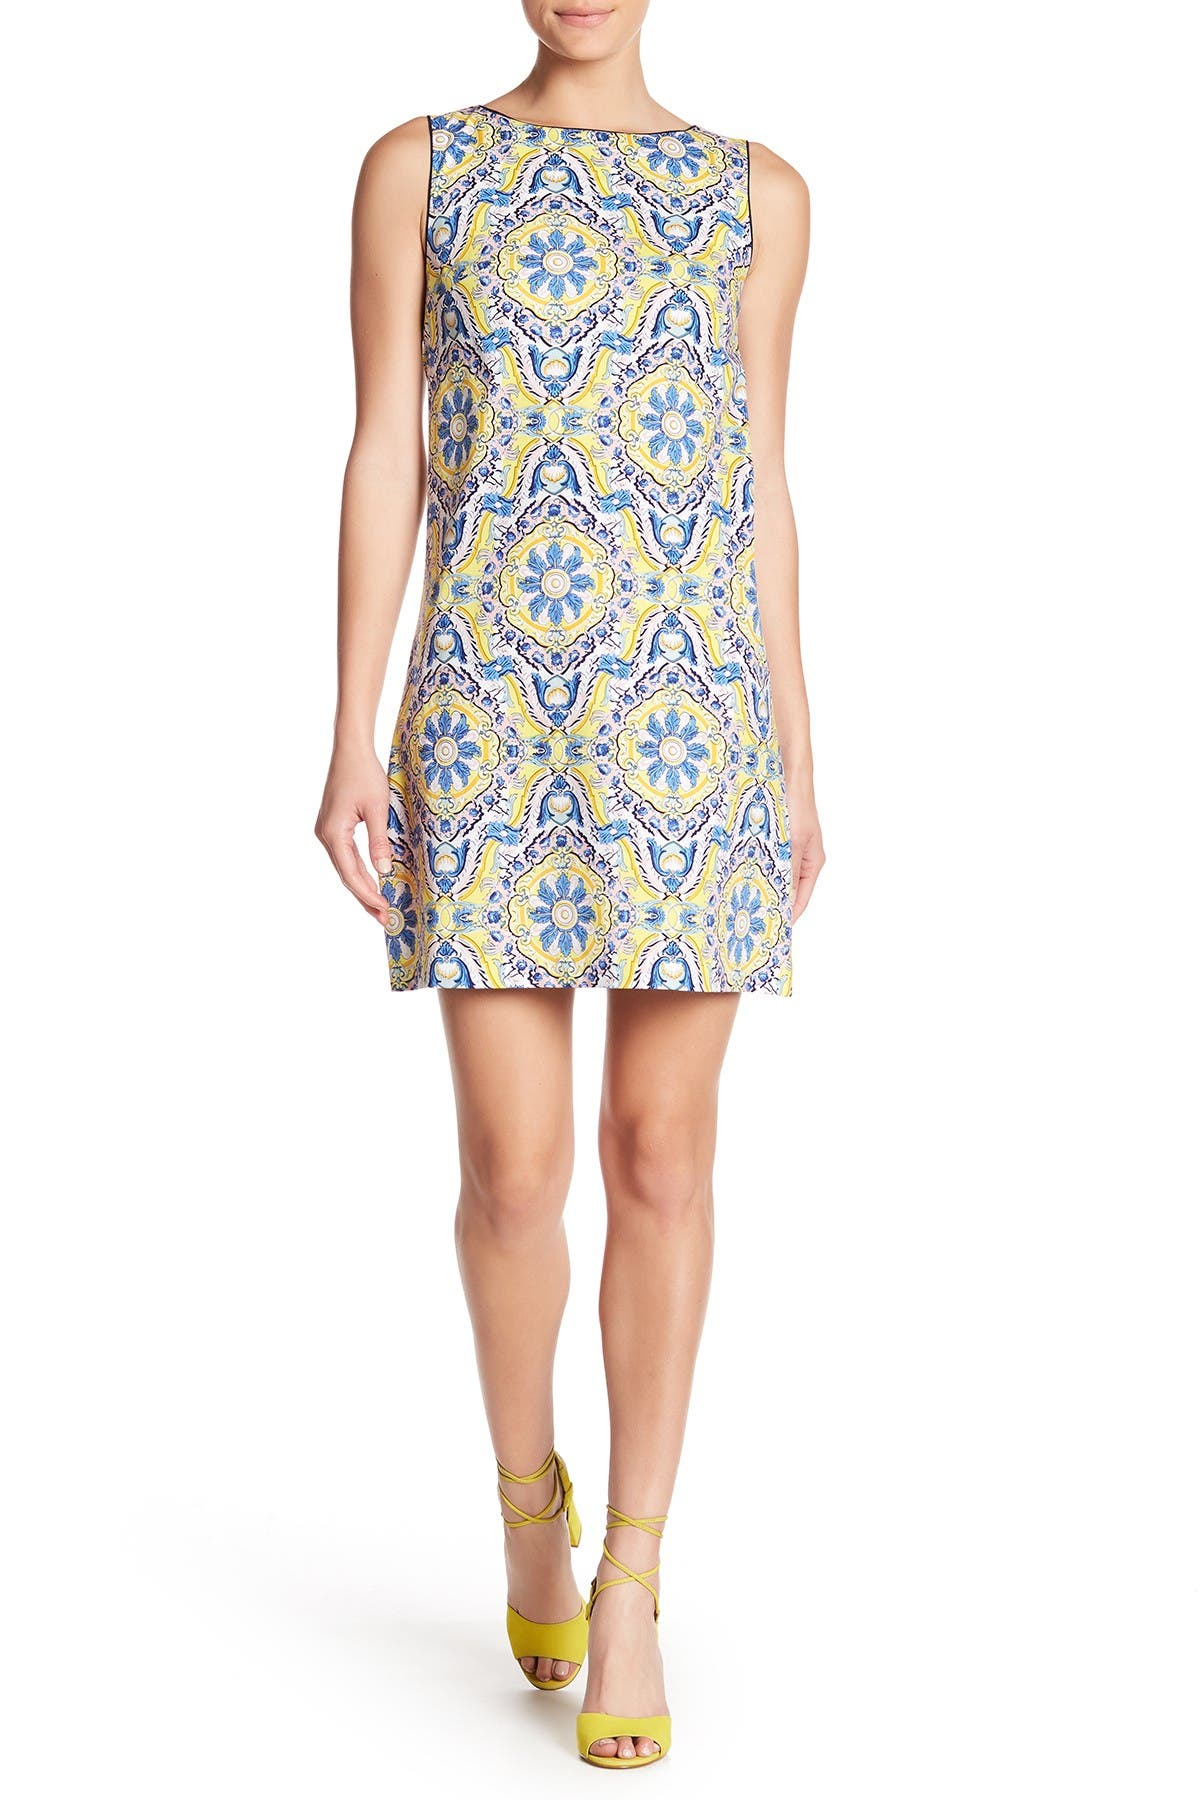 Image of Betsey Johnson Printed Cotton Shift Dress